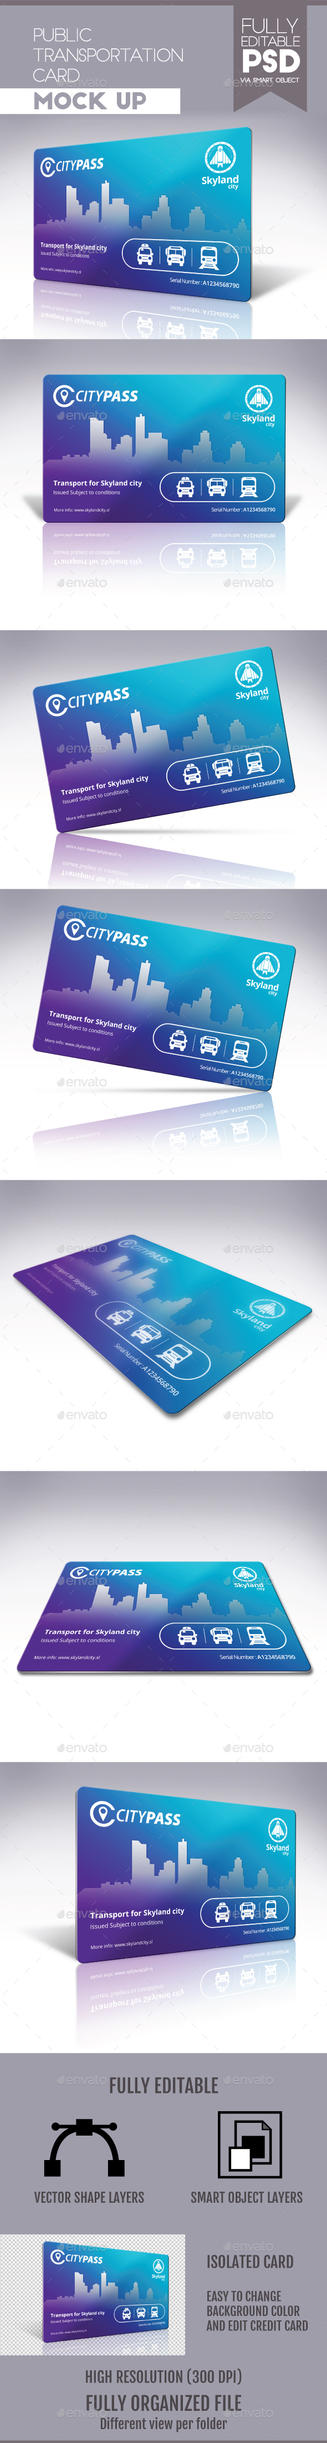 Public Transportation Card by doghead